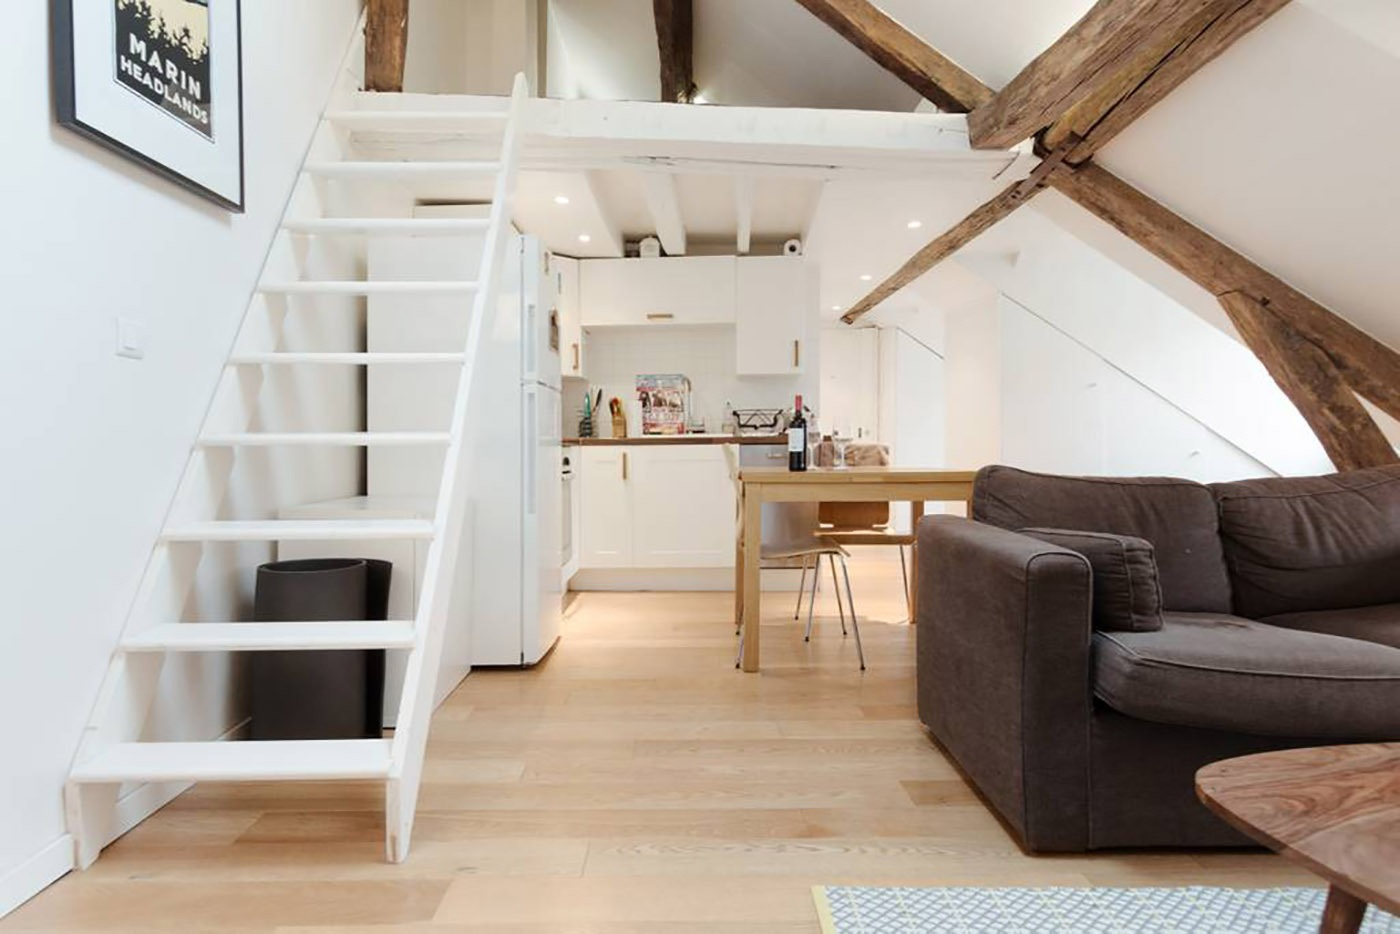 airbnb in st germain 3